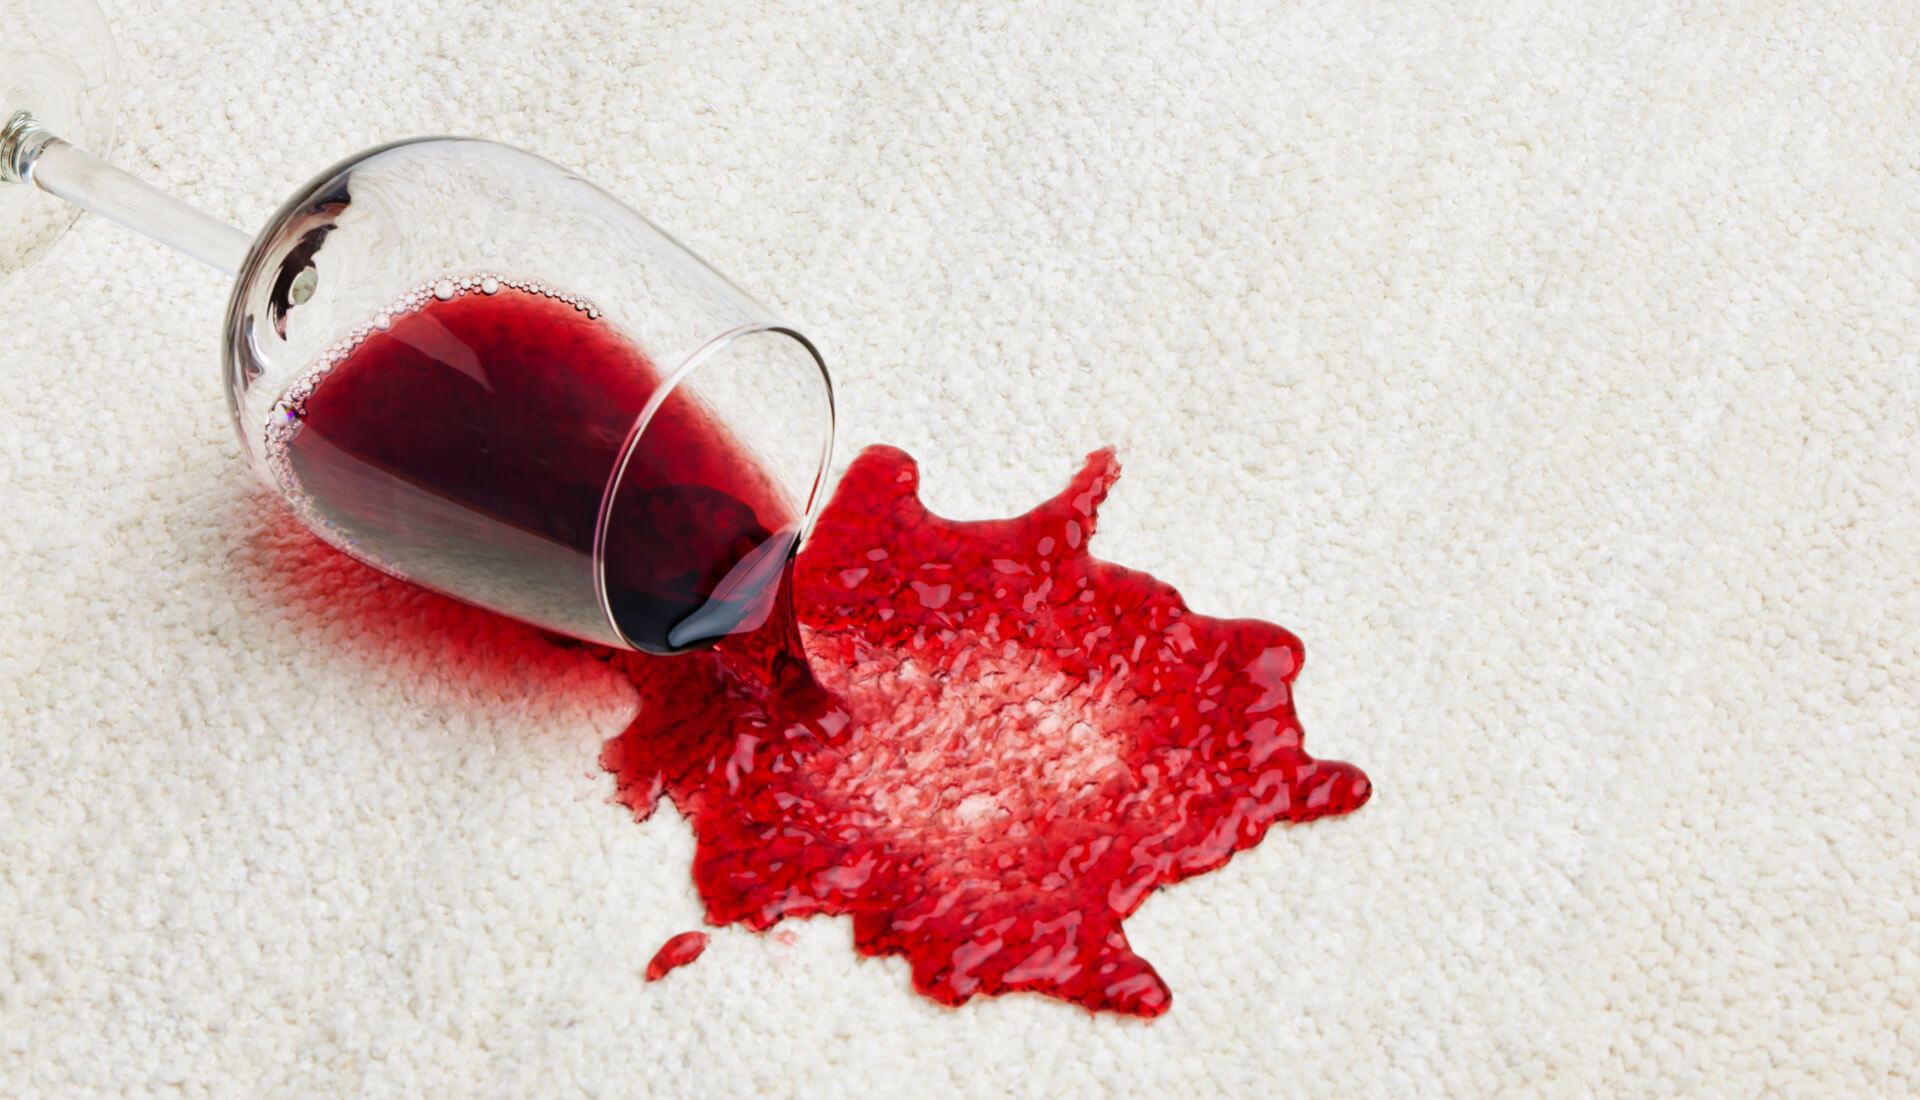 We Offer Wine Stain Removal